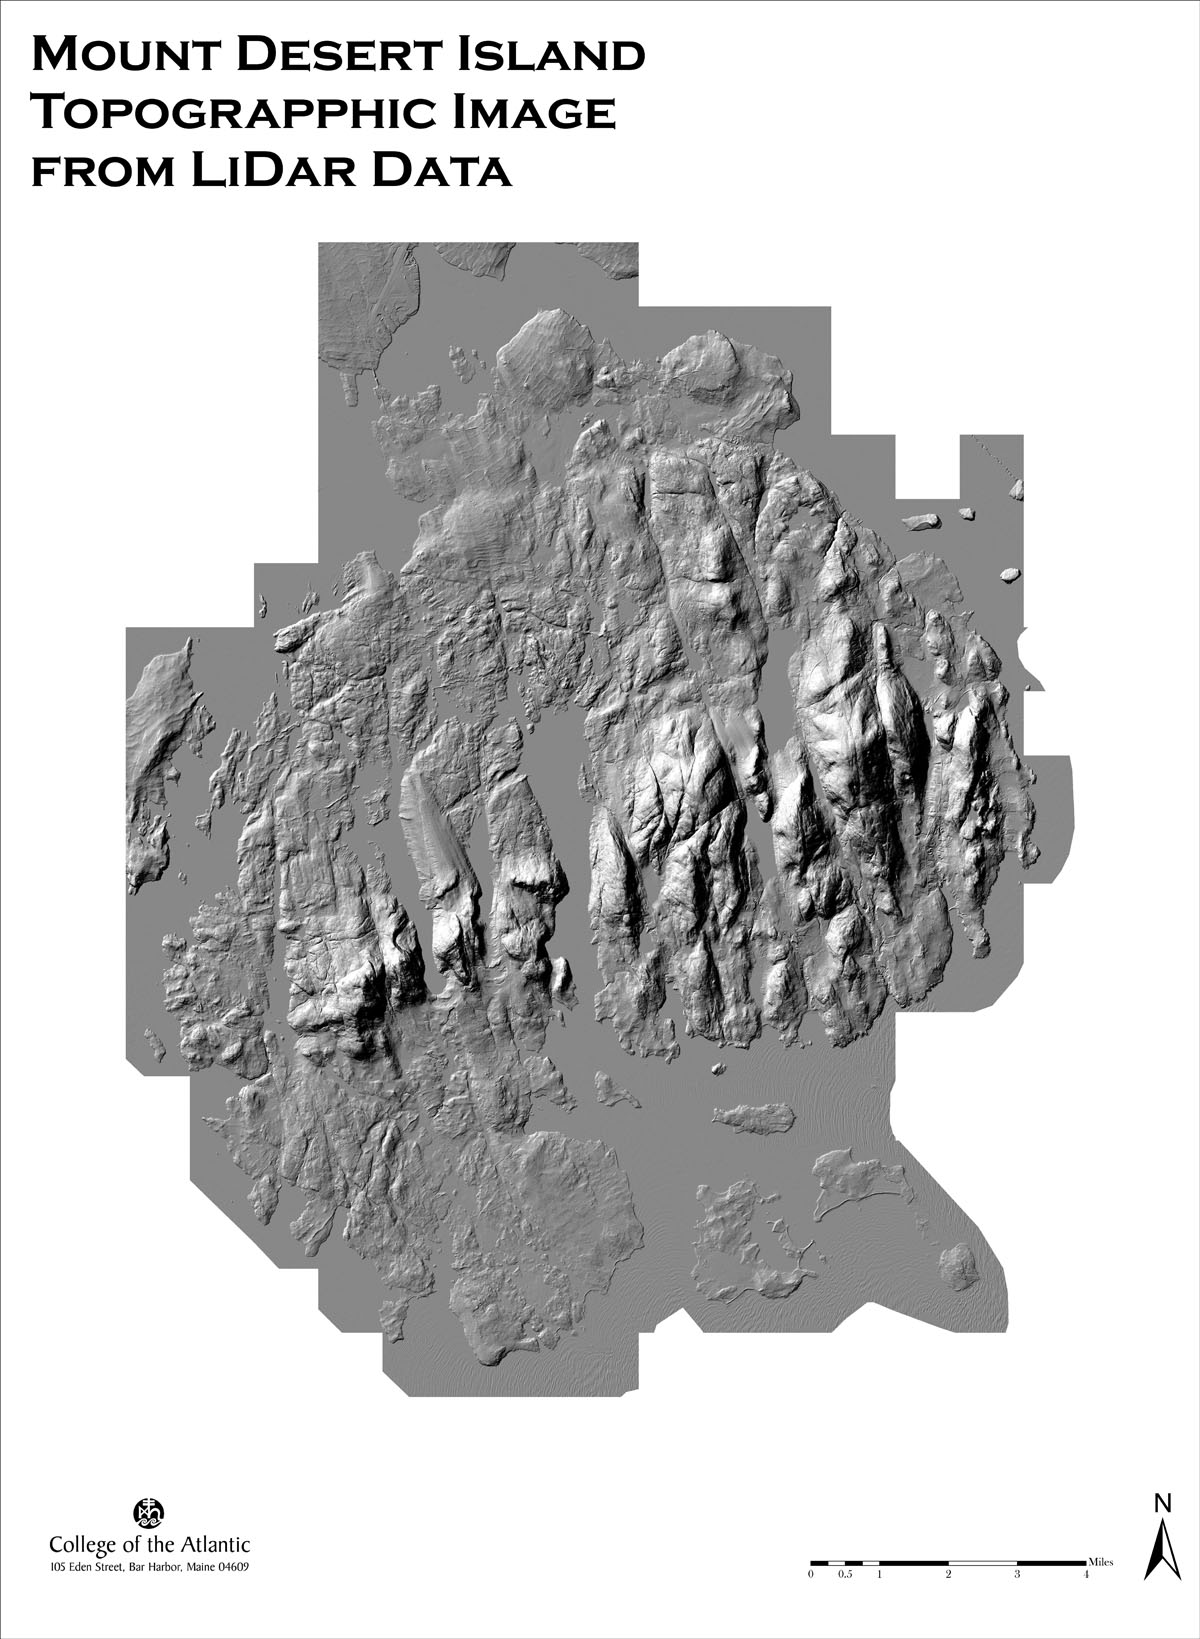 Shaded Relief Map of the Topography of Mount Desert Island